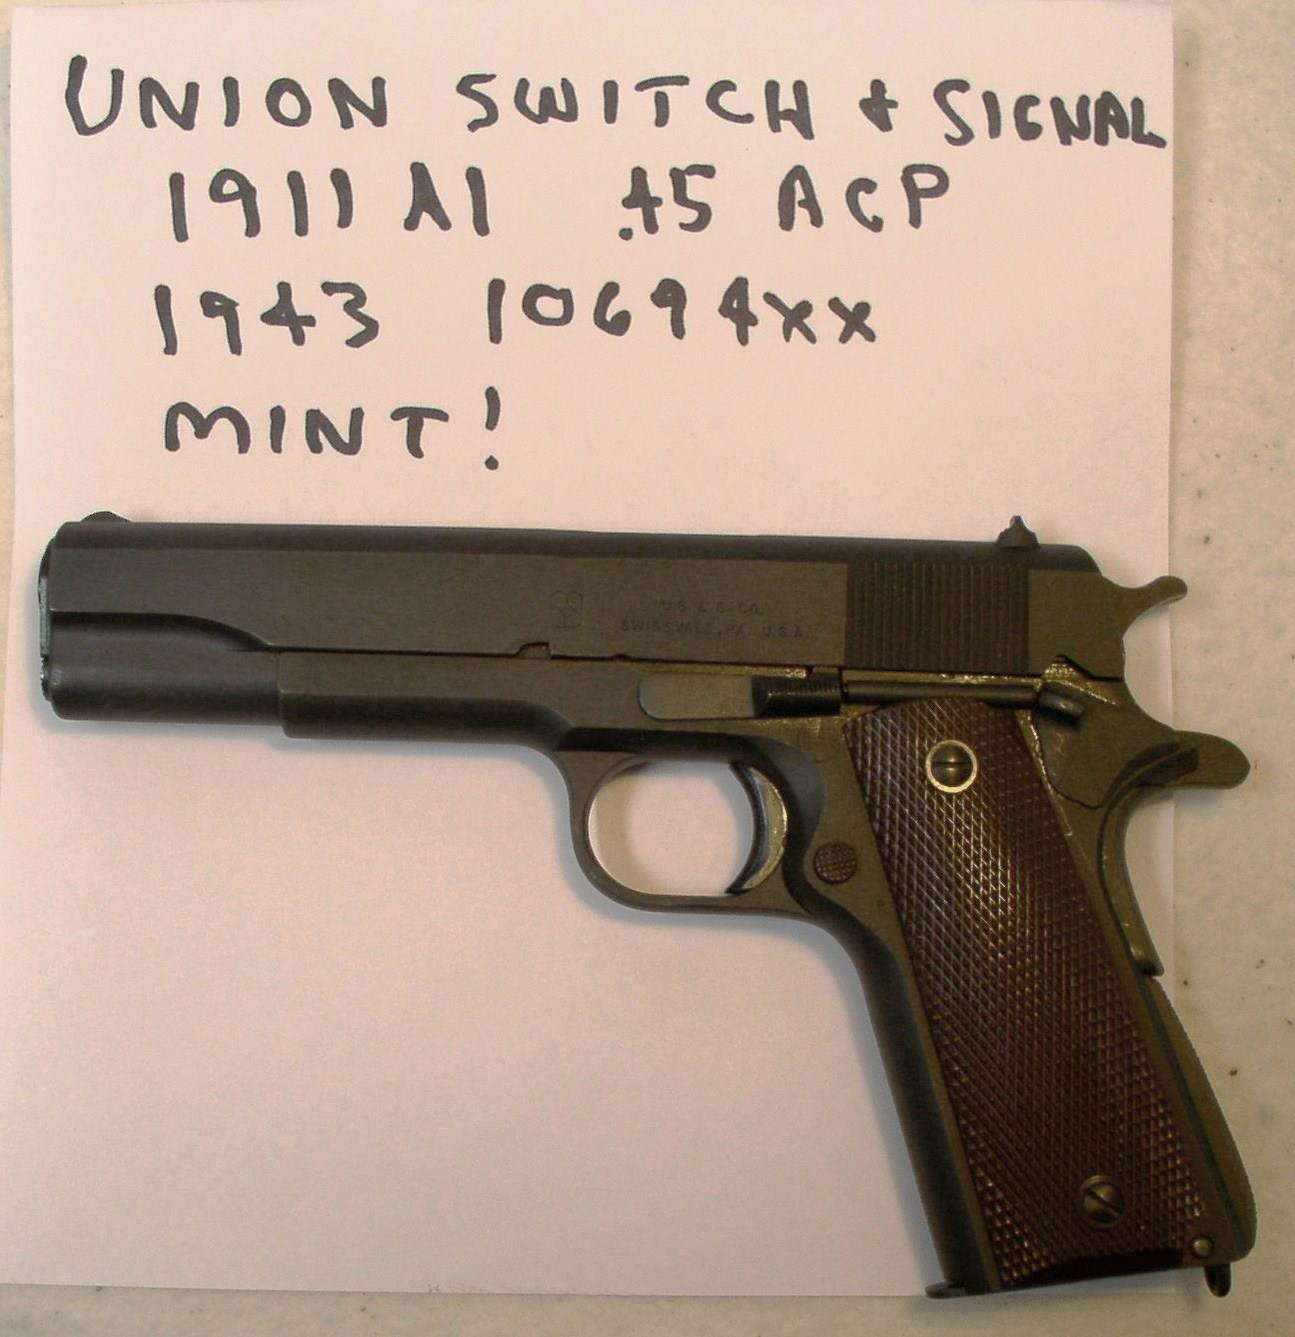 Colt Union Switch And Signal 45acp Cal Pistol For Sale